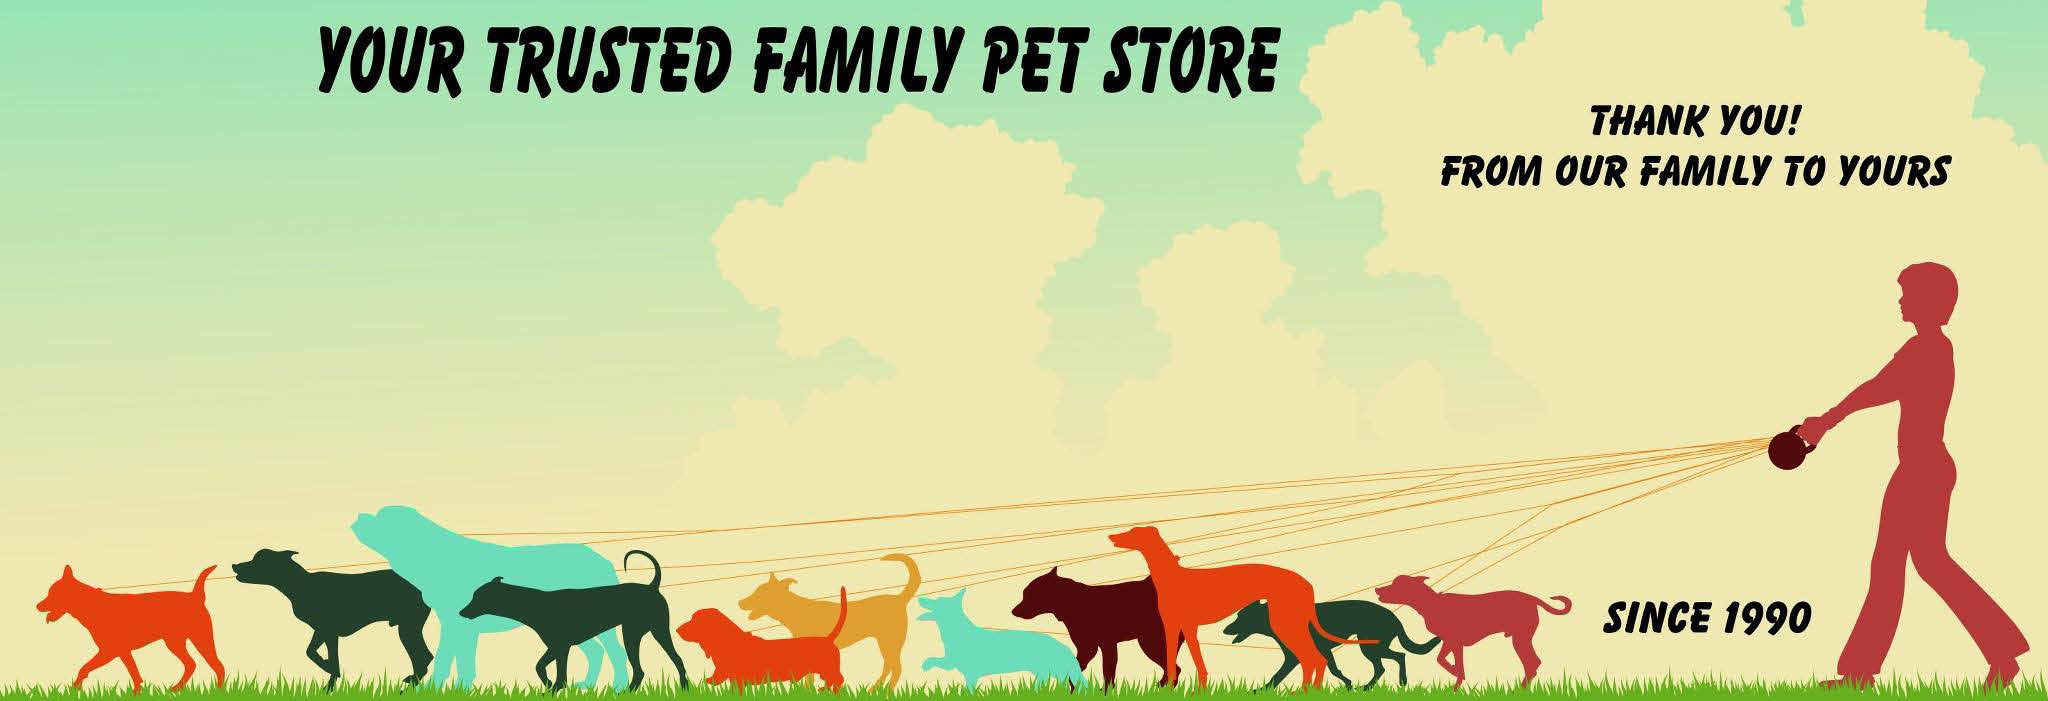 pet supply warehouse anaheim hills, ca banner pet supply coupons near me